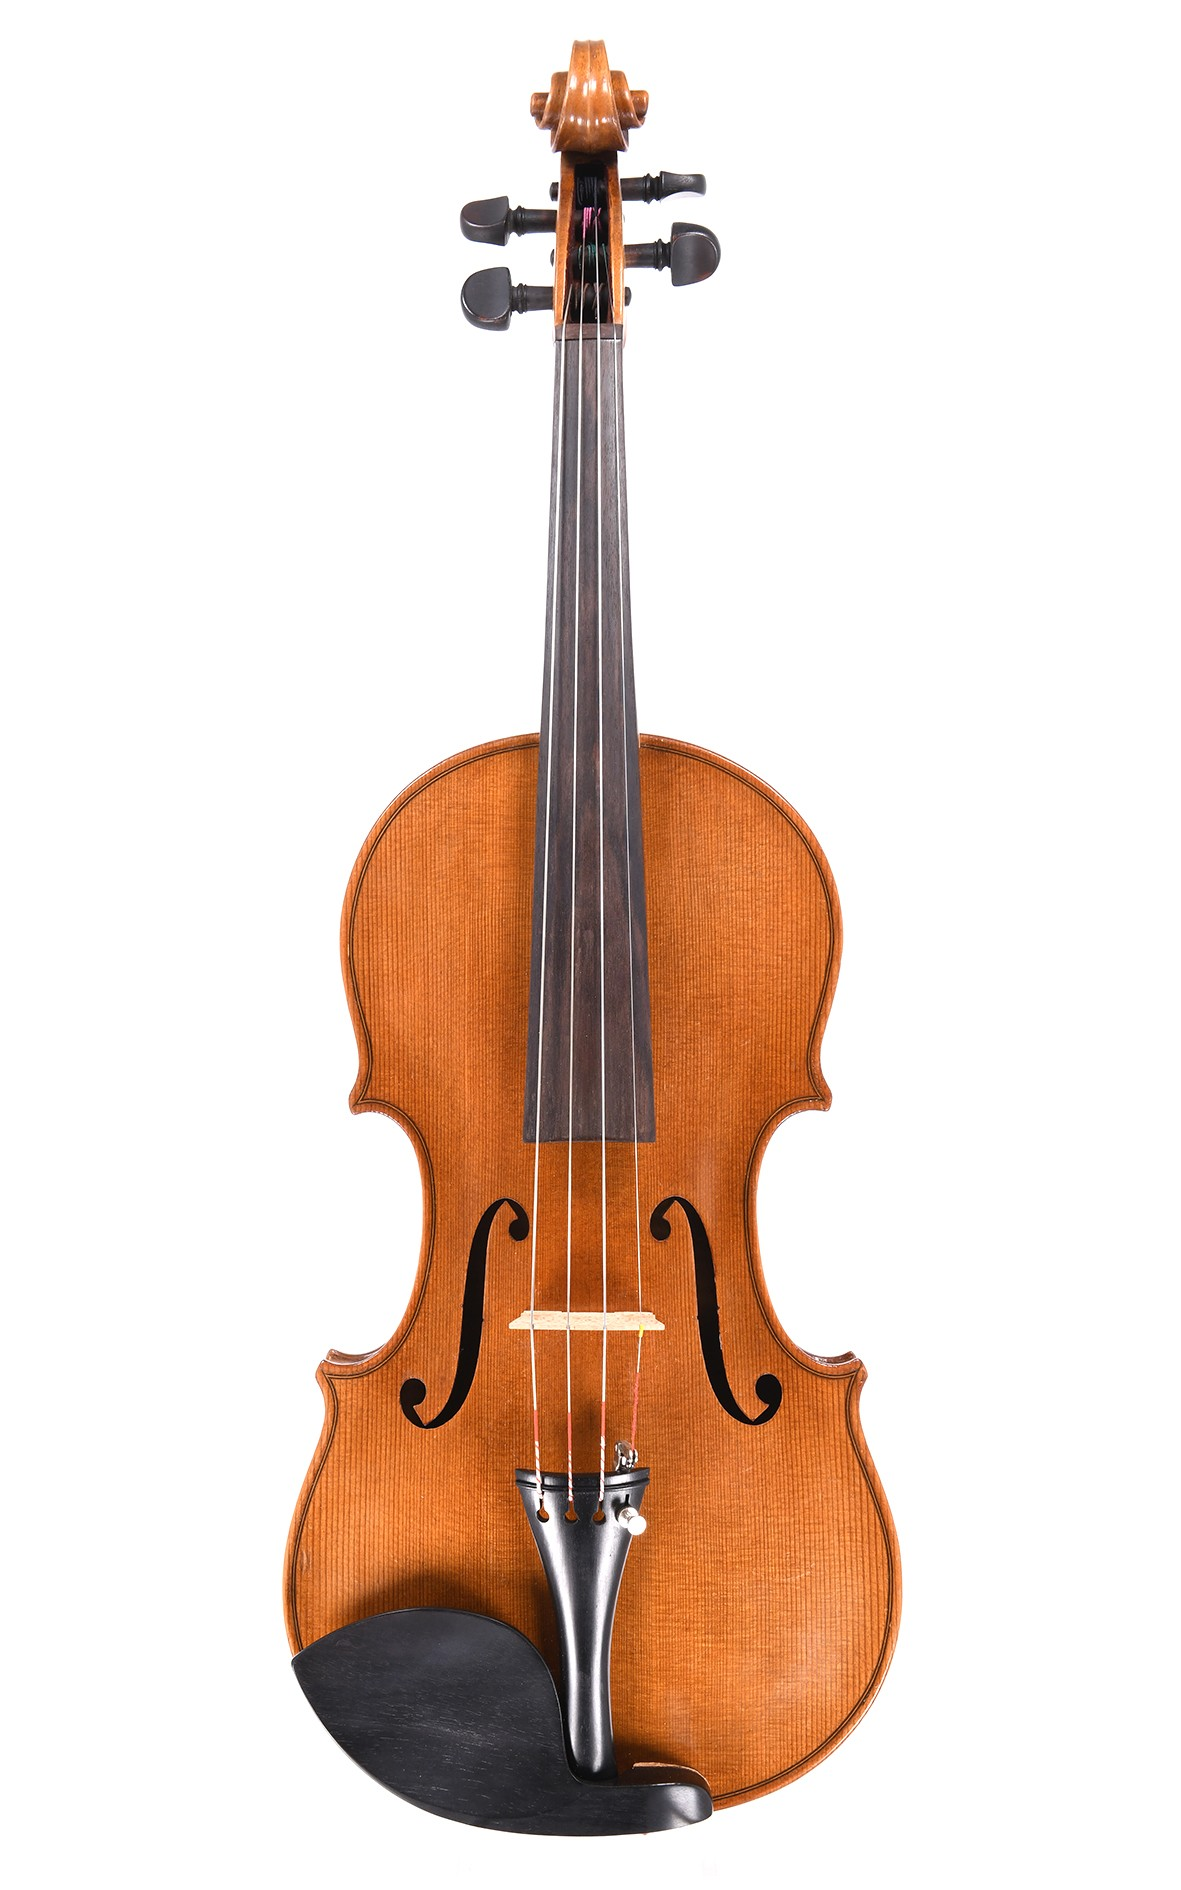 Violin after Guarneri. Markneukirchen circa 1940